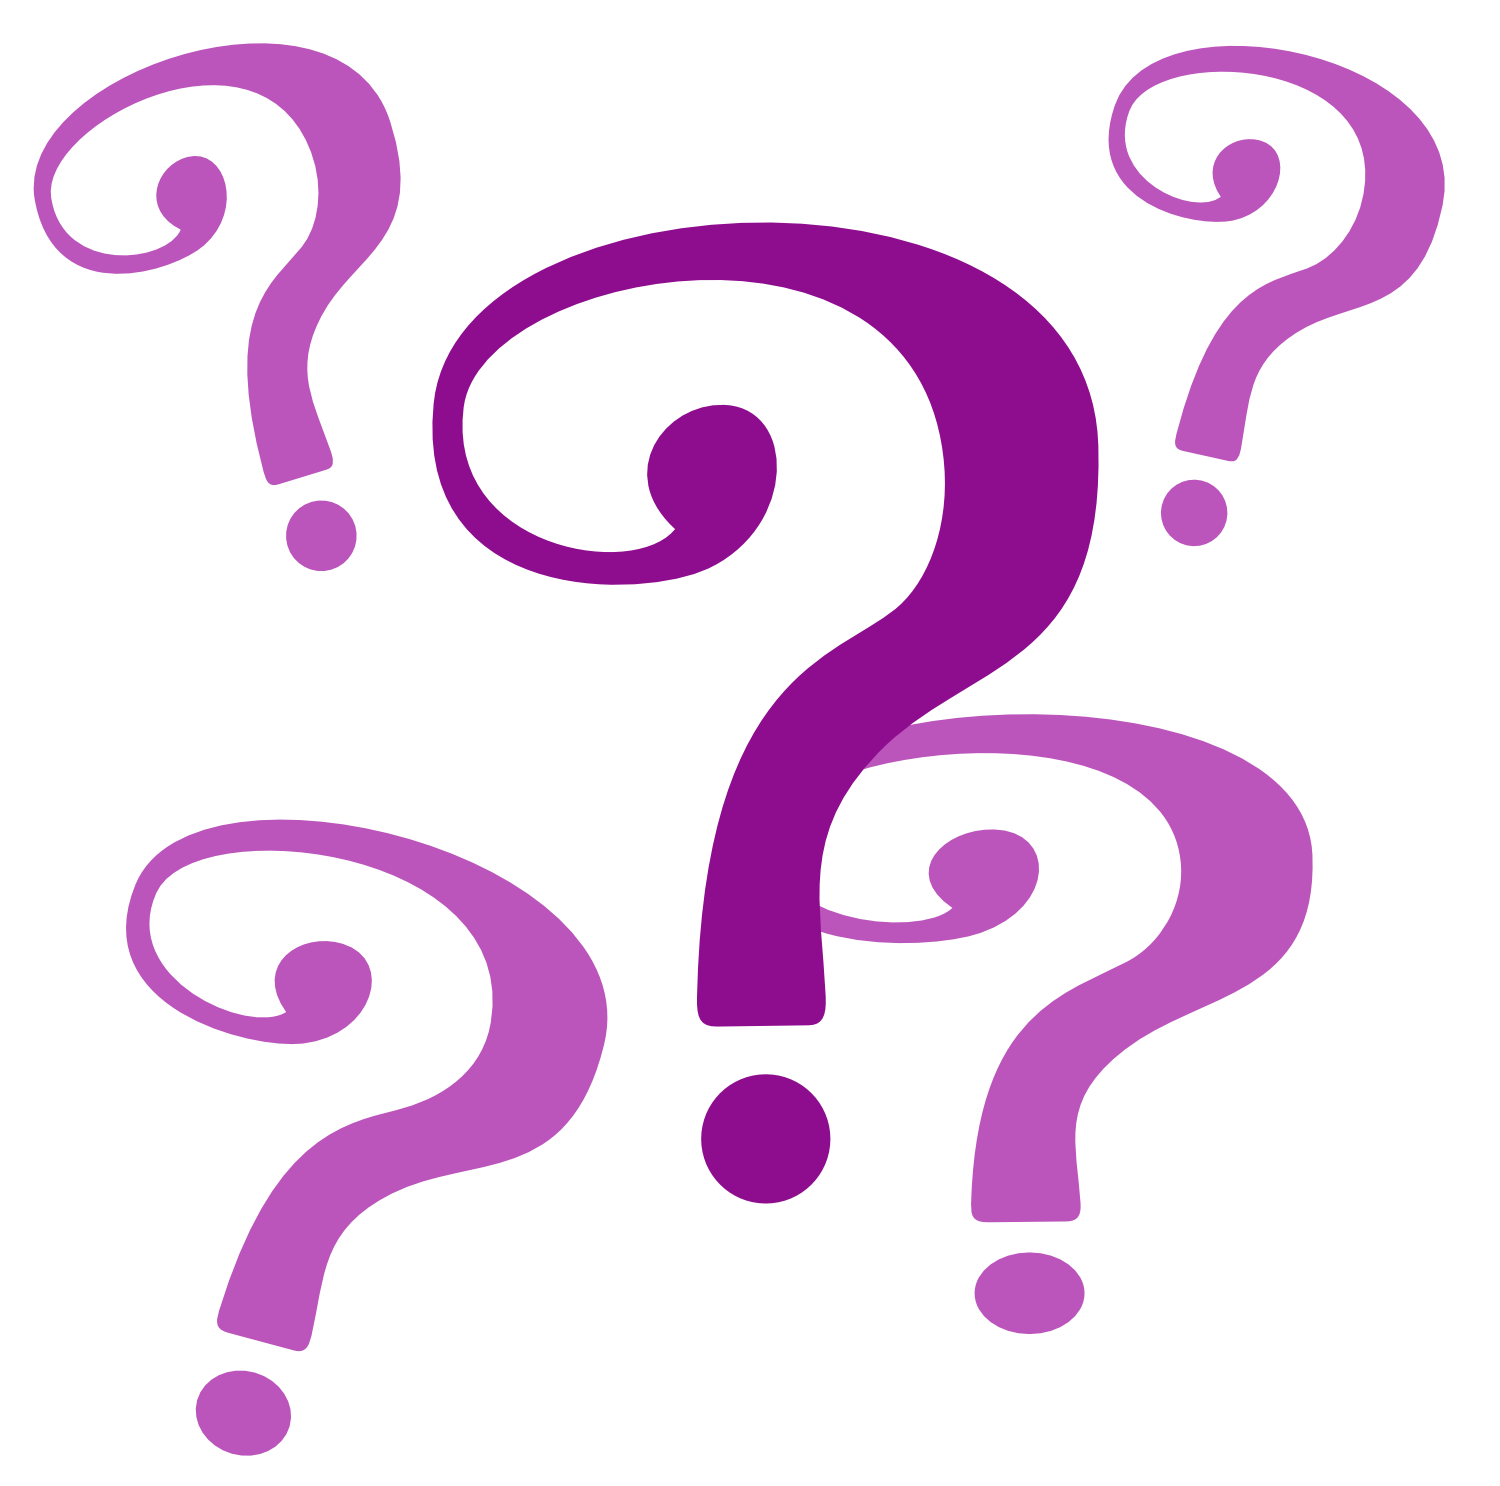 Animated question mark clipart 3.